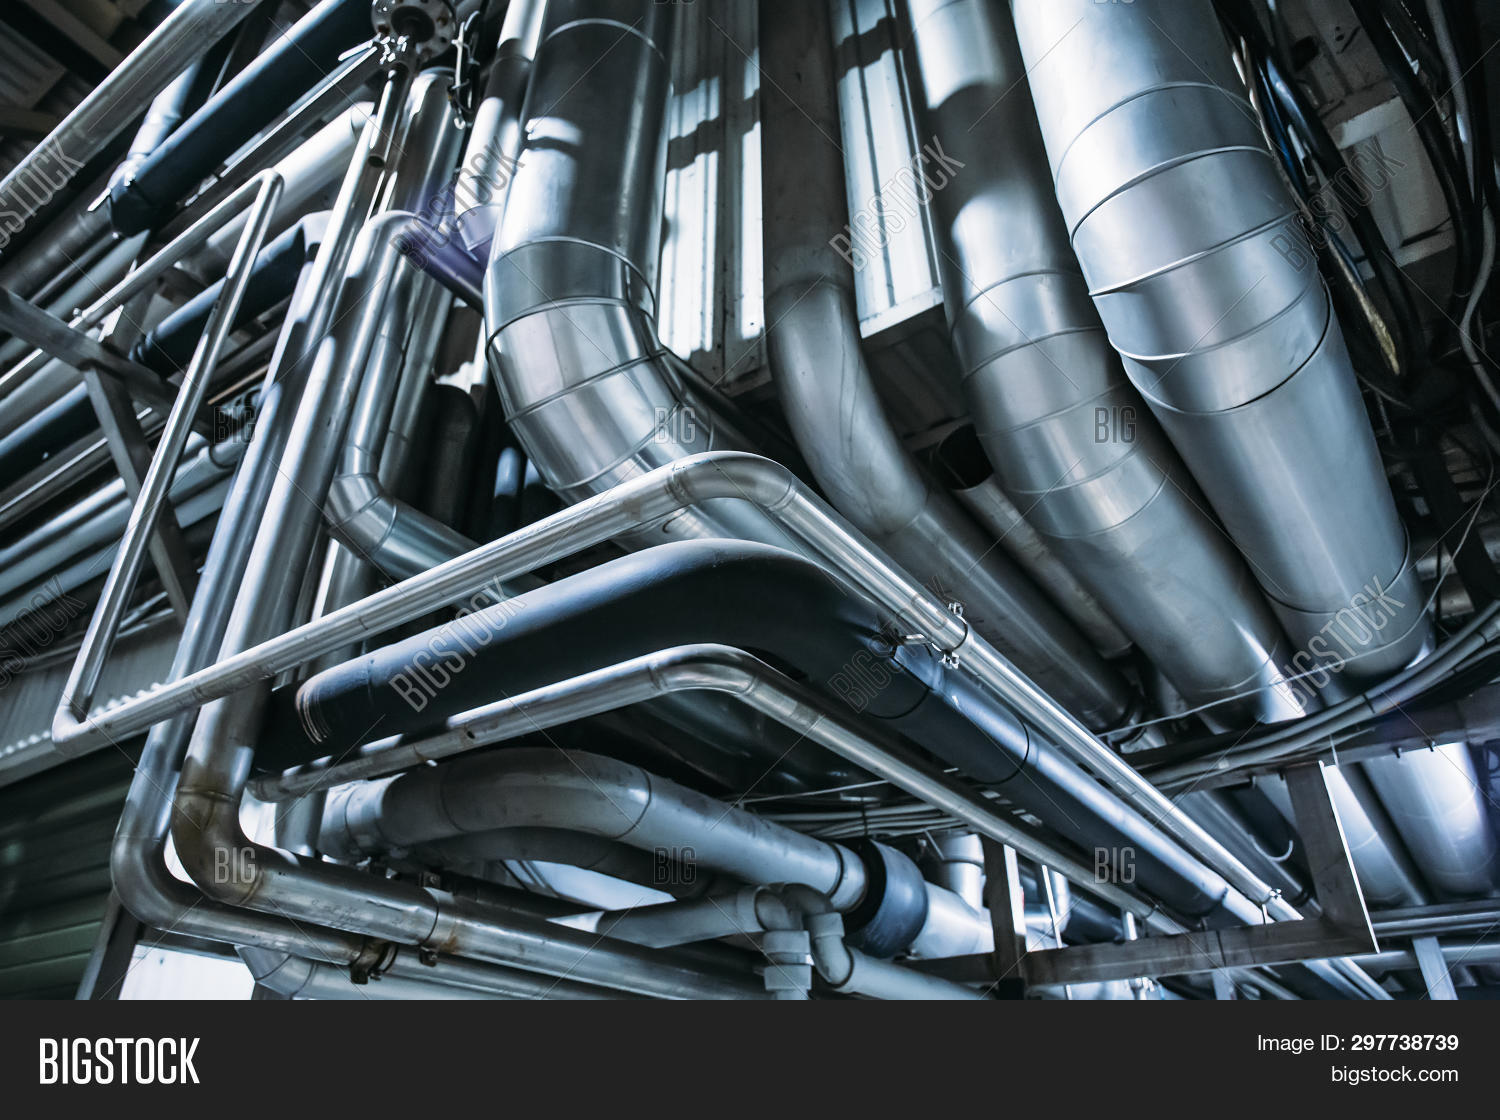 Industrial Steel Pipes Or Tubes Of Air Ventilation System As Abstract Industry Equipment Background